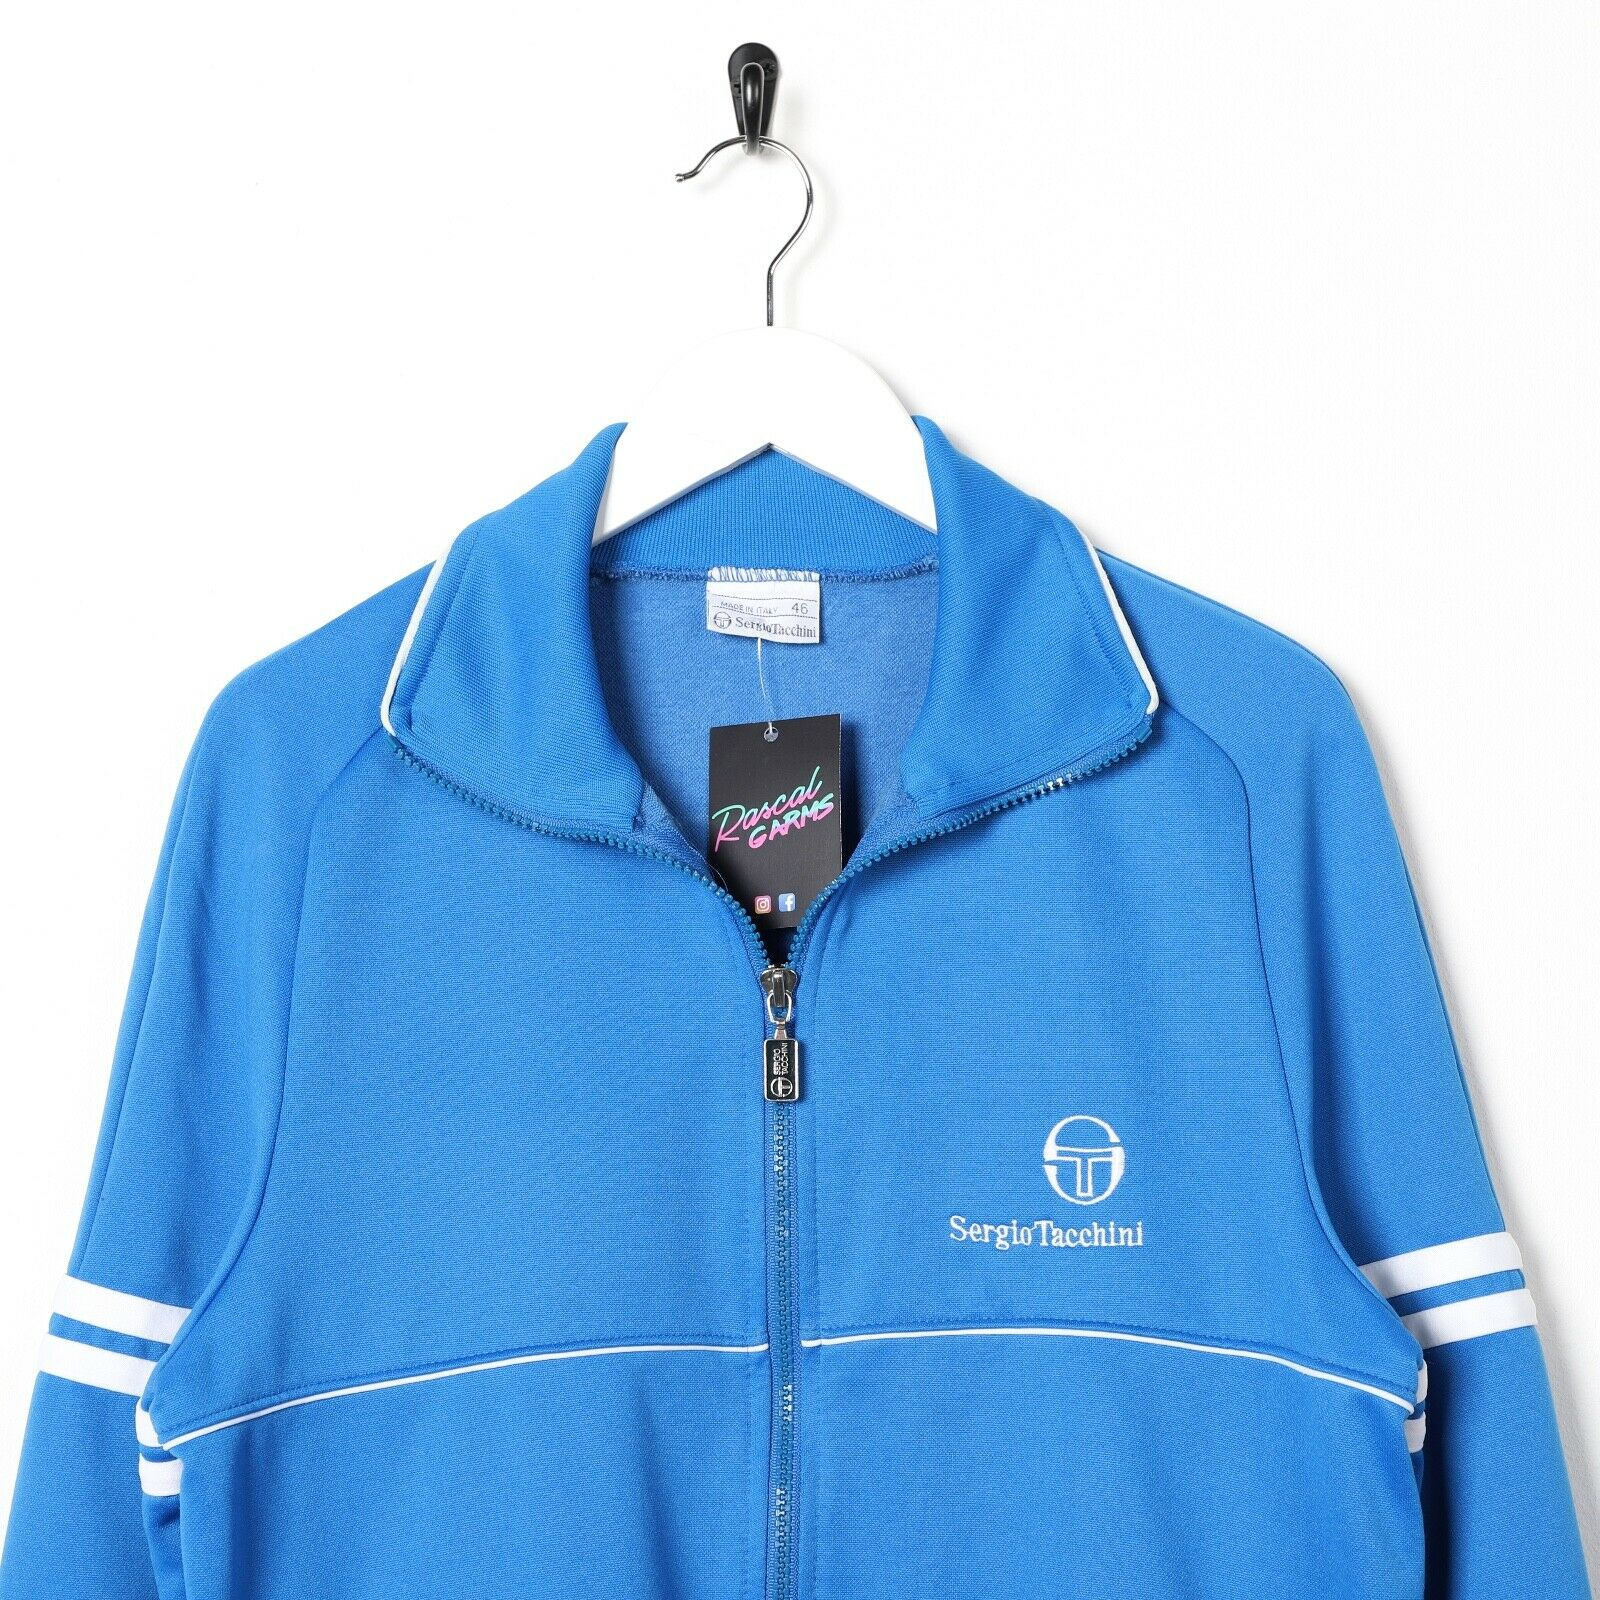 Vintage SERGIO TACCHINI Small Logo Track Top Jacket Blue small S